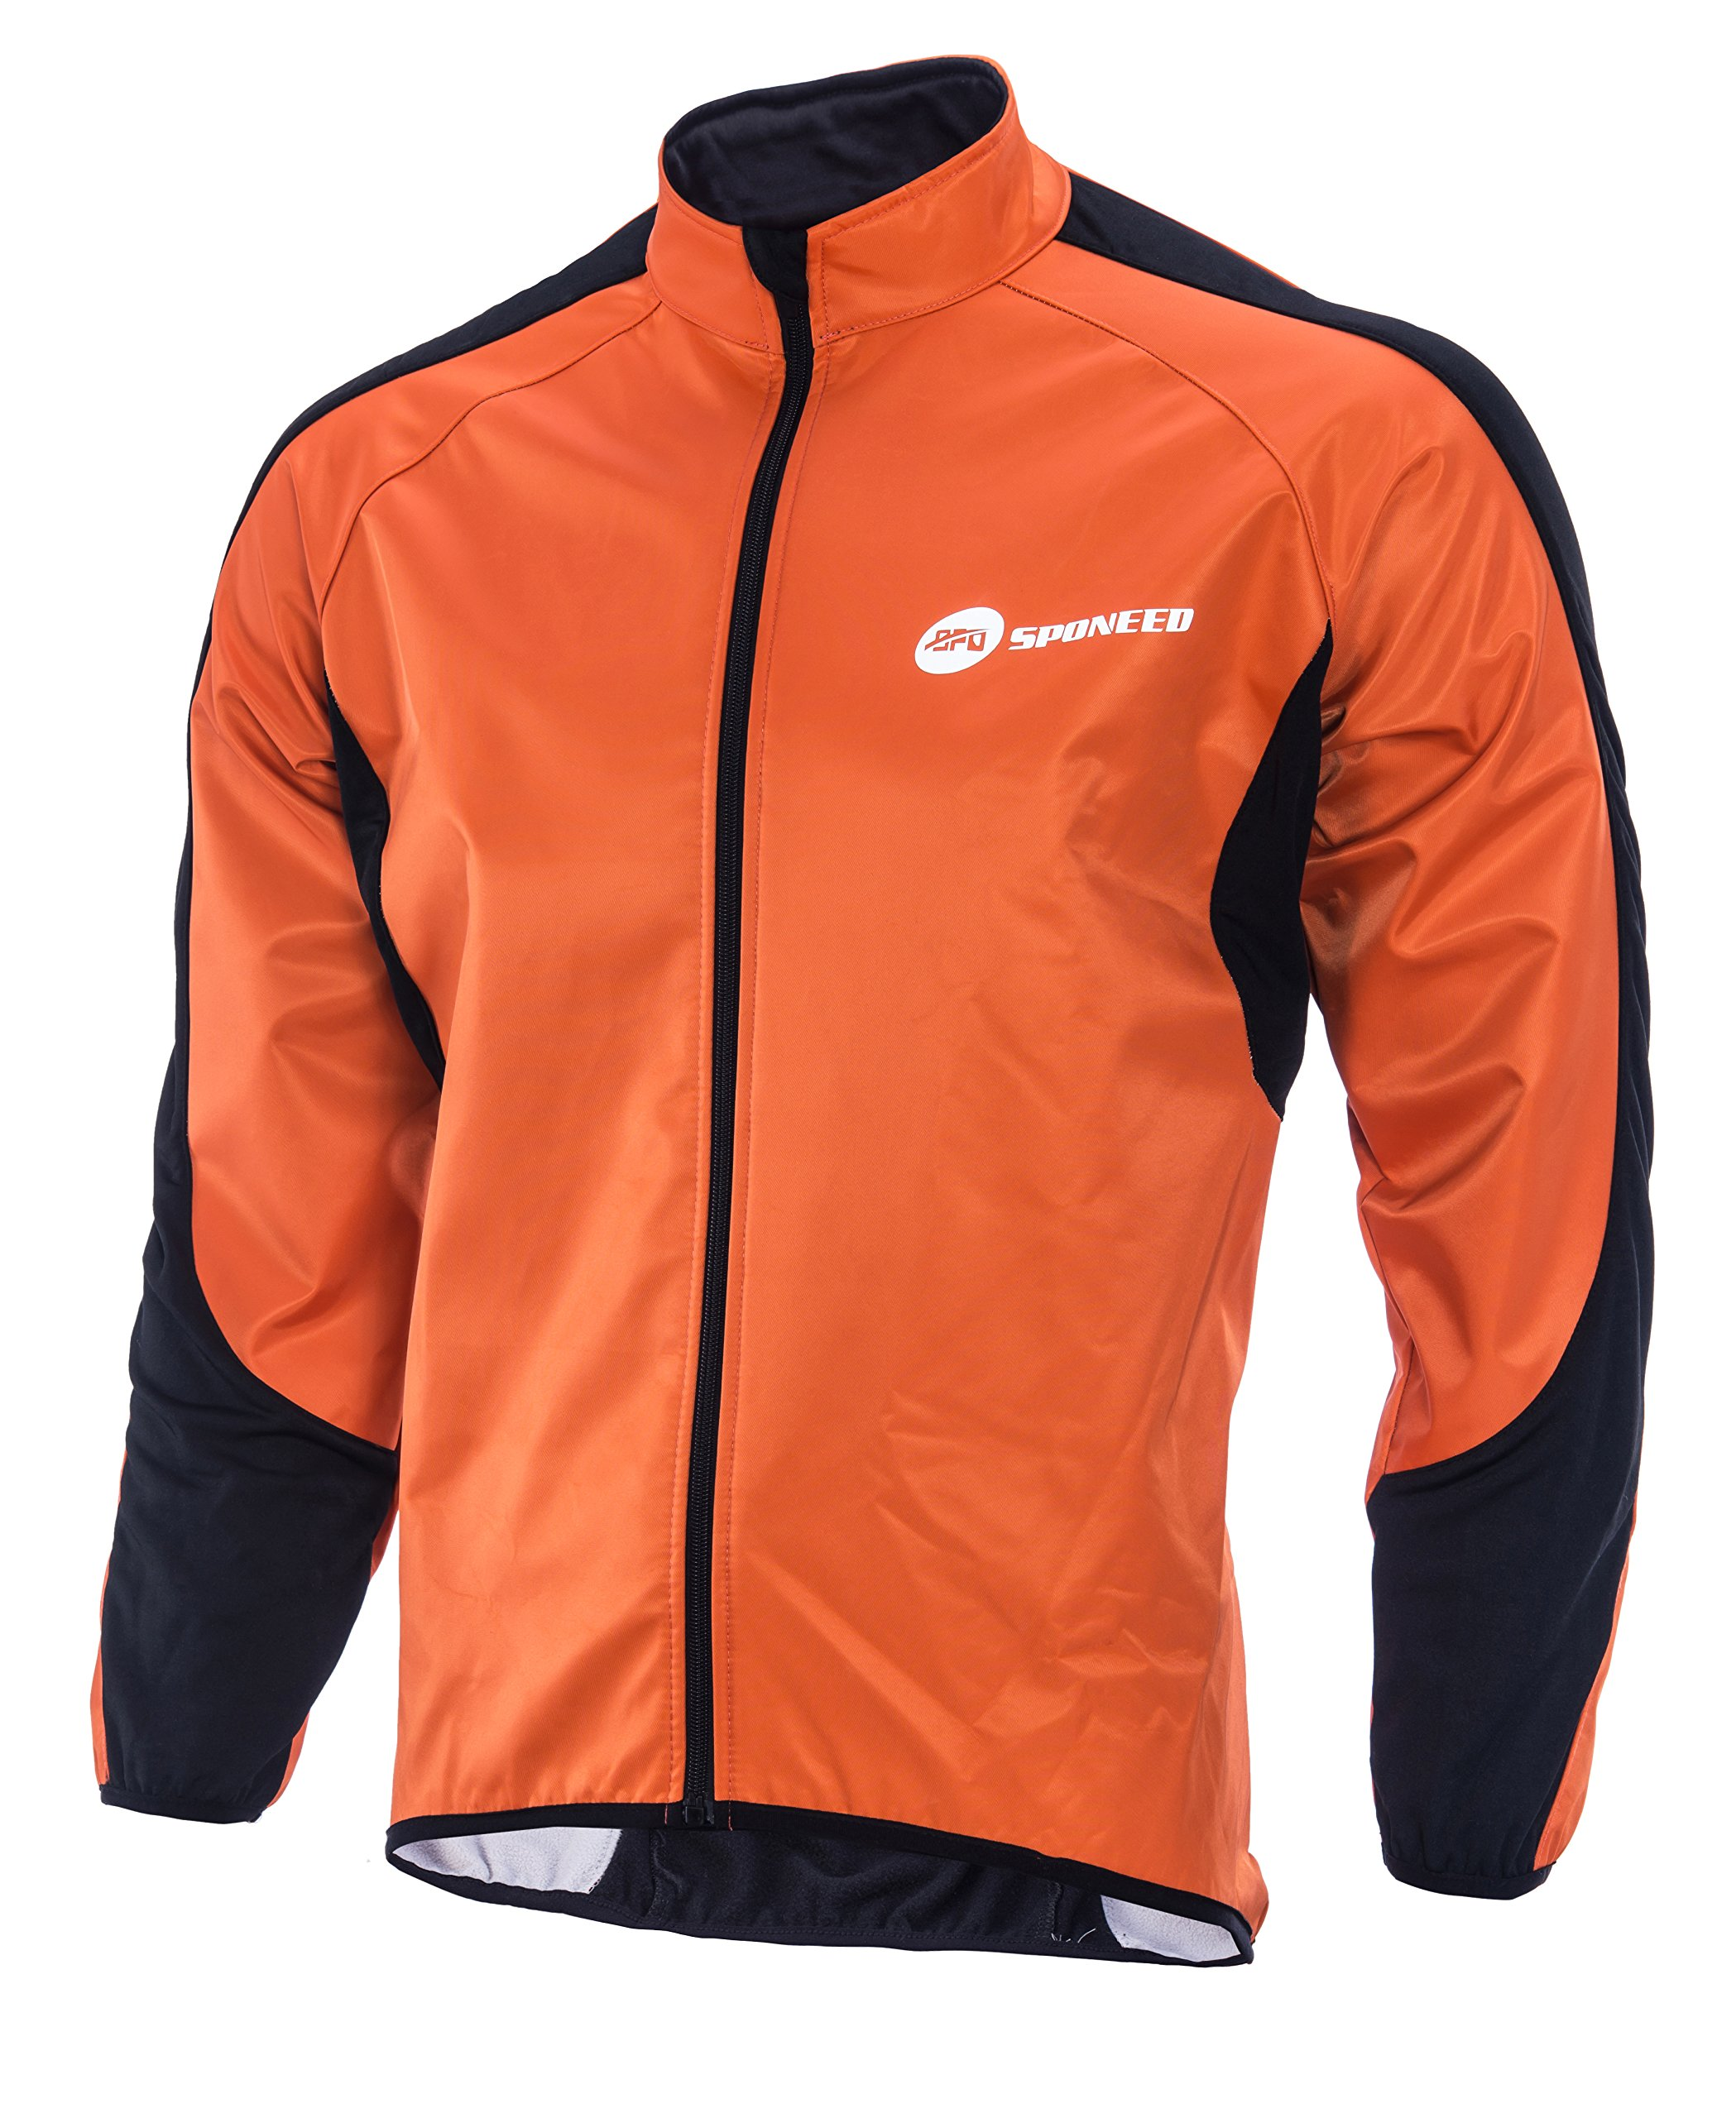 a10570b69 sponeed Men s Wind Jackets Cycling Fleece Coat Shirts Winter Windproof  Thermal Bicycle Bike Clothes product image